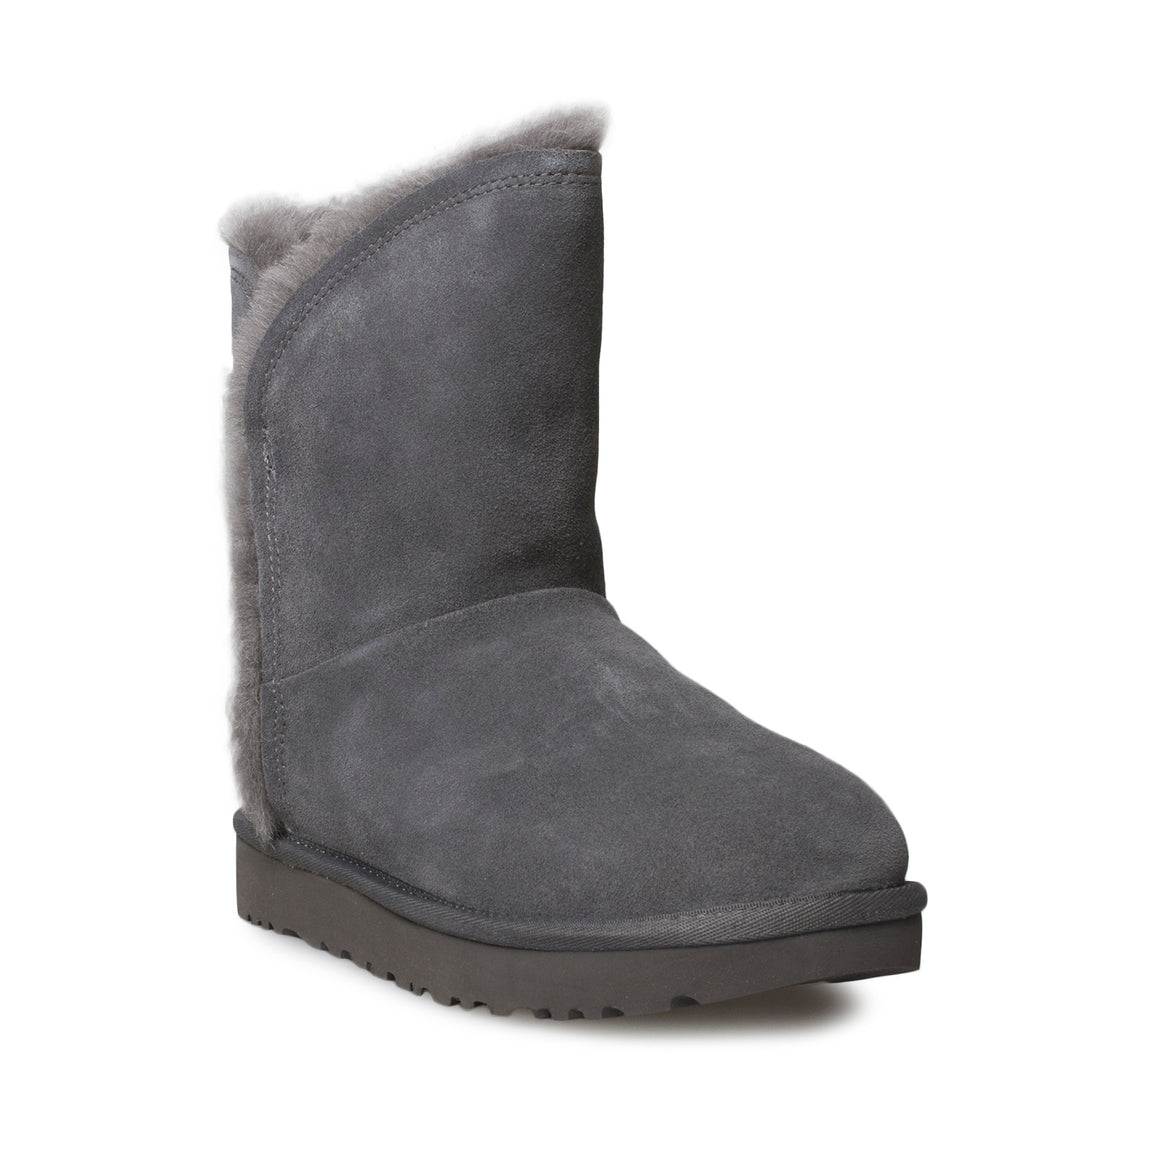 UGG Classic Short Fluff High Low Charcoal Boots - Women's